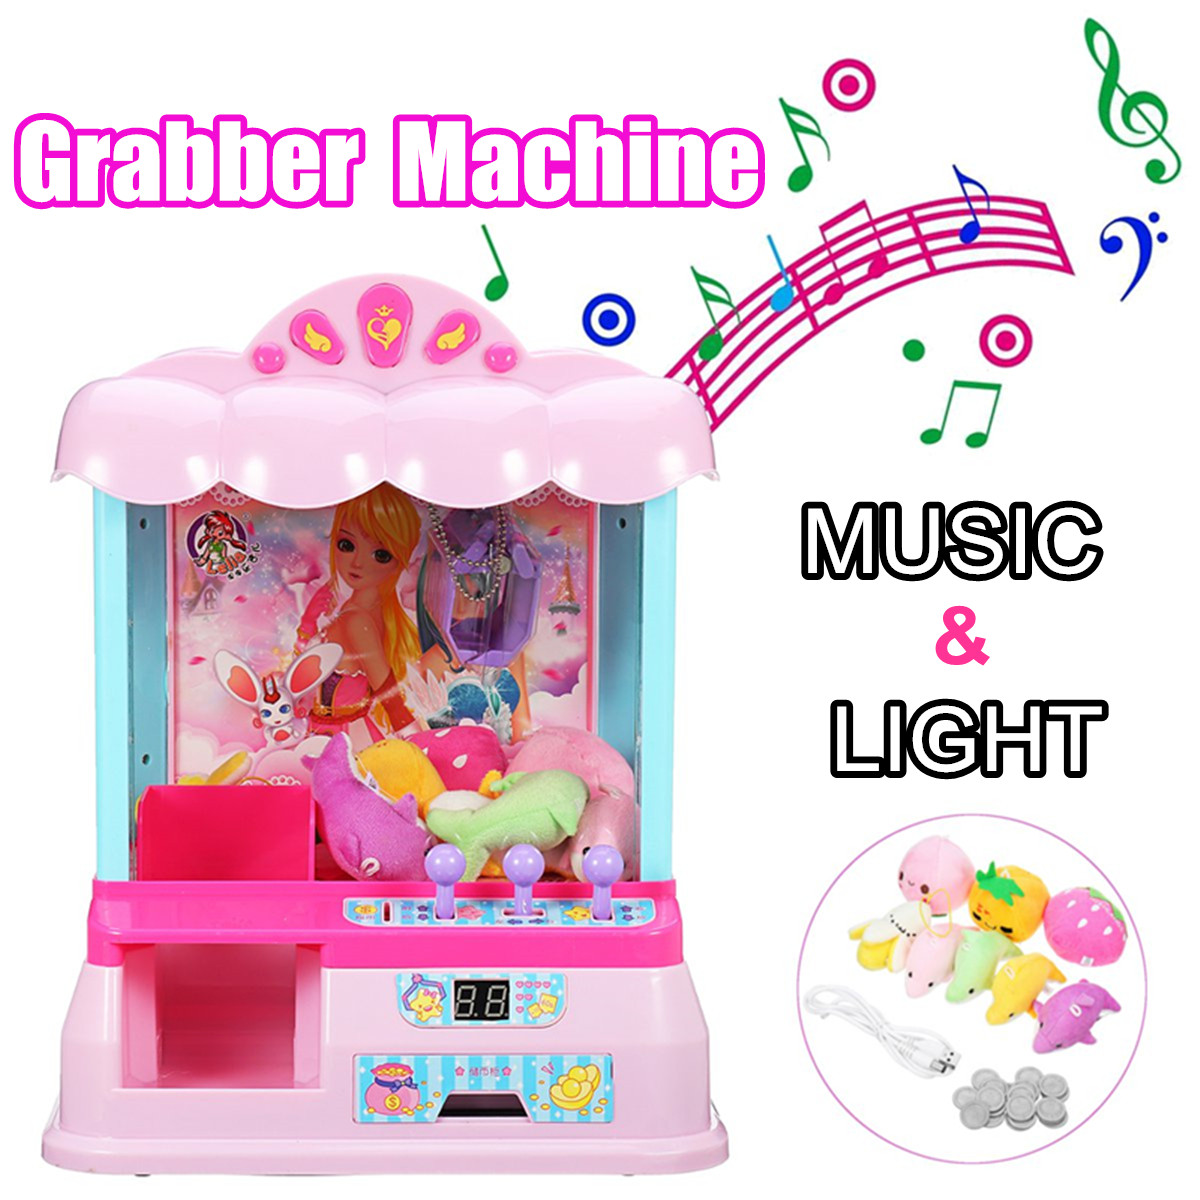 Catcher Coin Operated Game Machine Kids Candy Grabber ABS Plastic Electric Claw Machine Crane Token Home Toys With Music LightCatcher Coin Operated Game Machine Kids Candy Grabber ABS Plastic Electric Claw Machine Crane Token Home Toys With Music Light